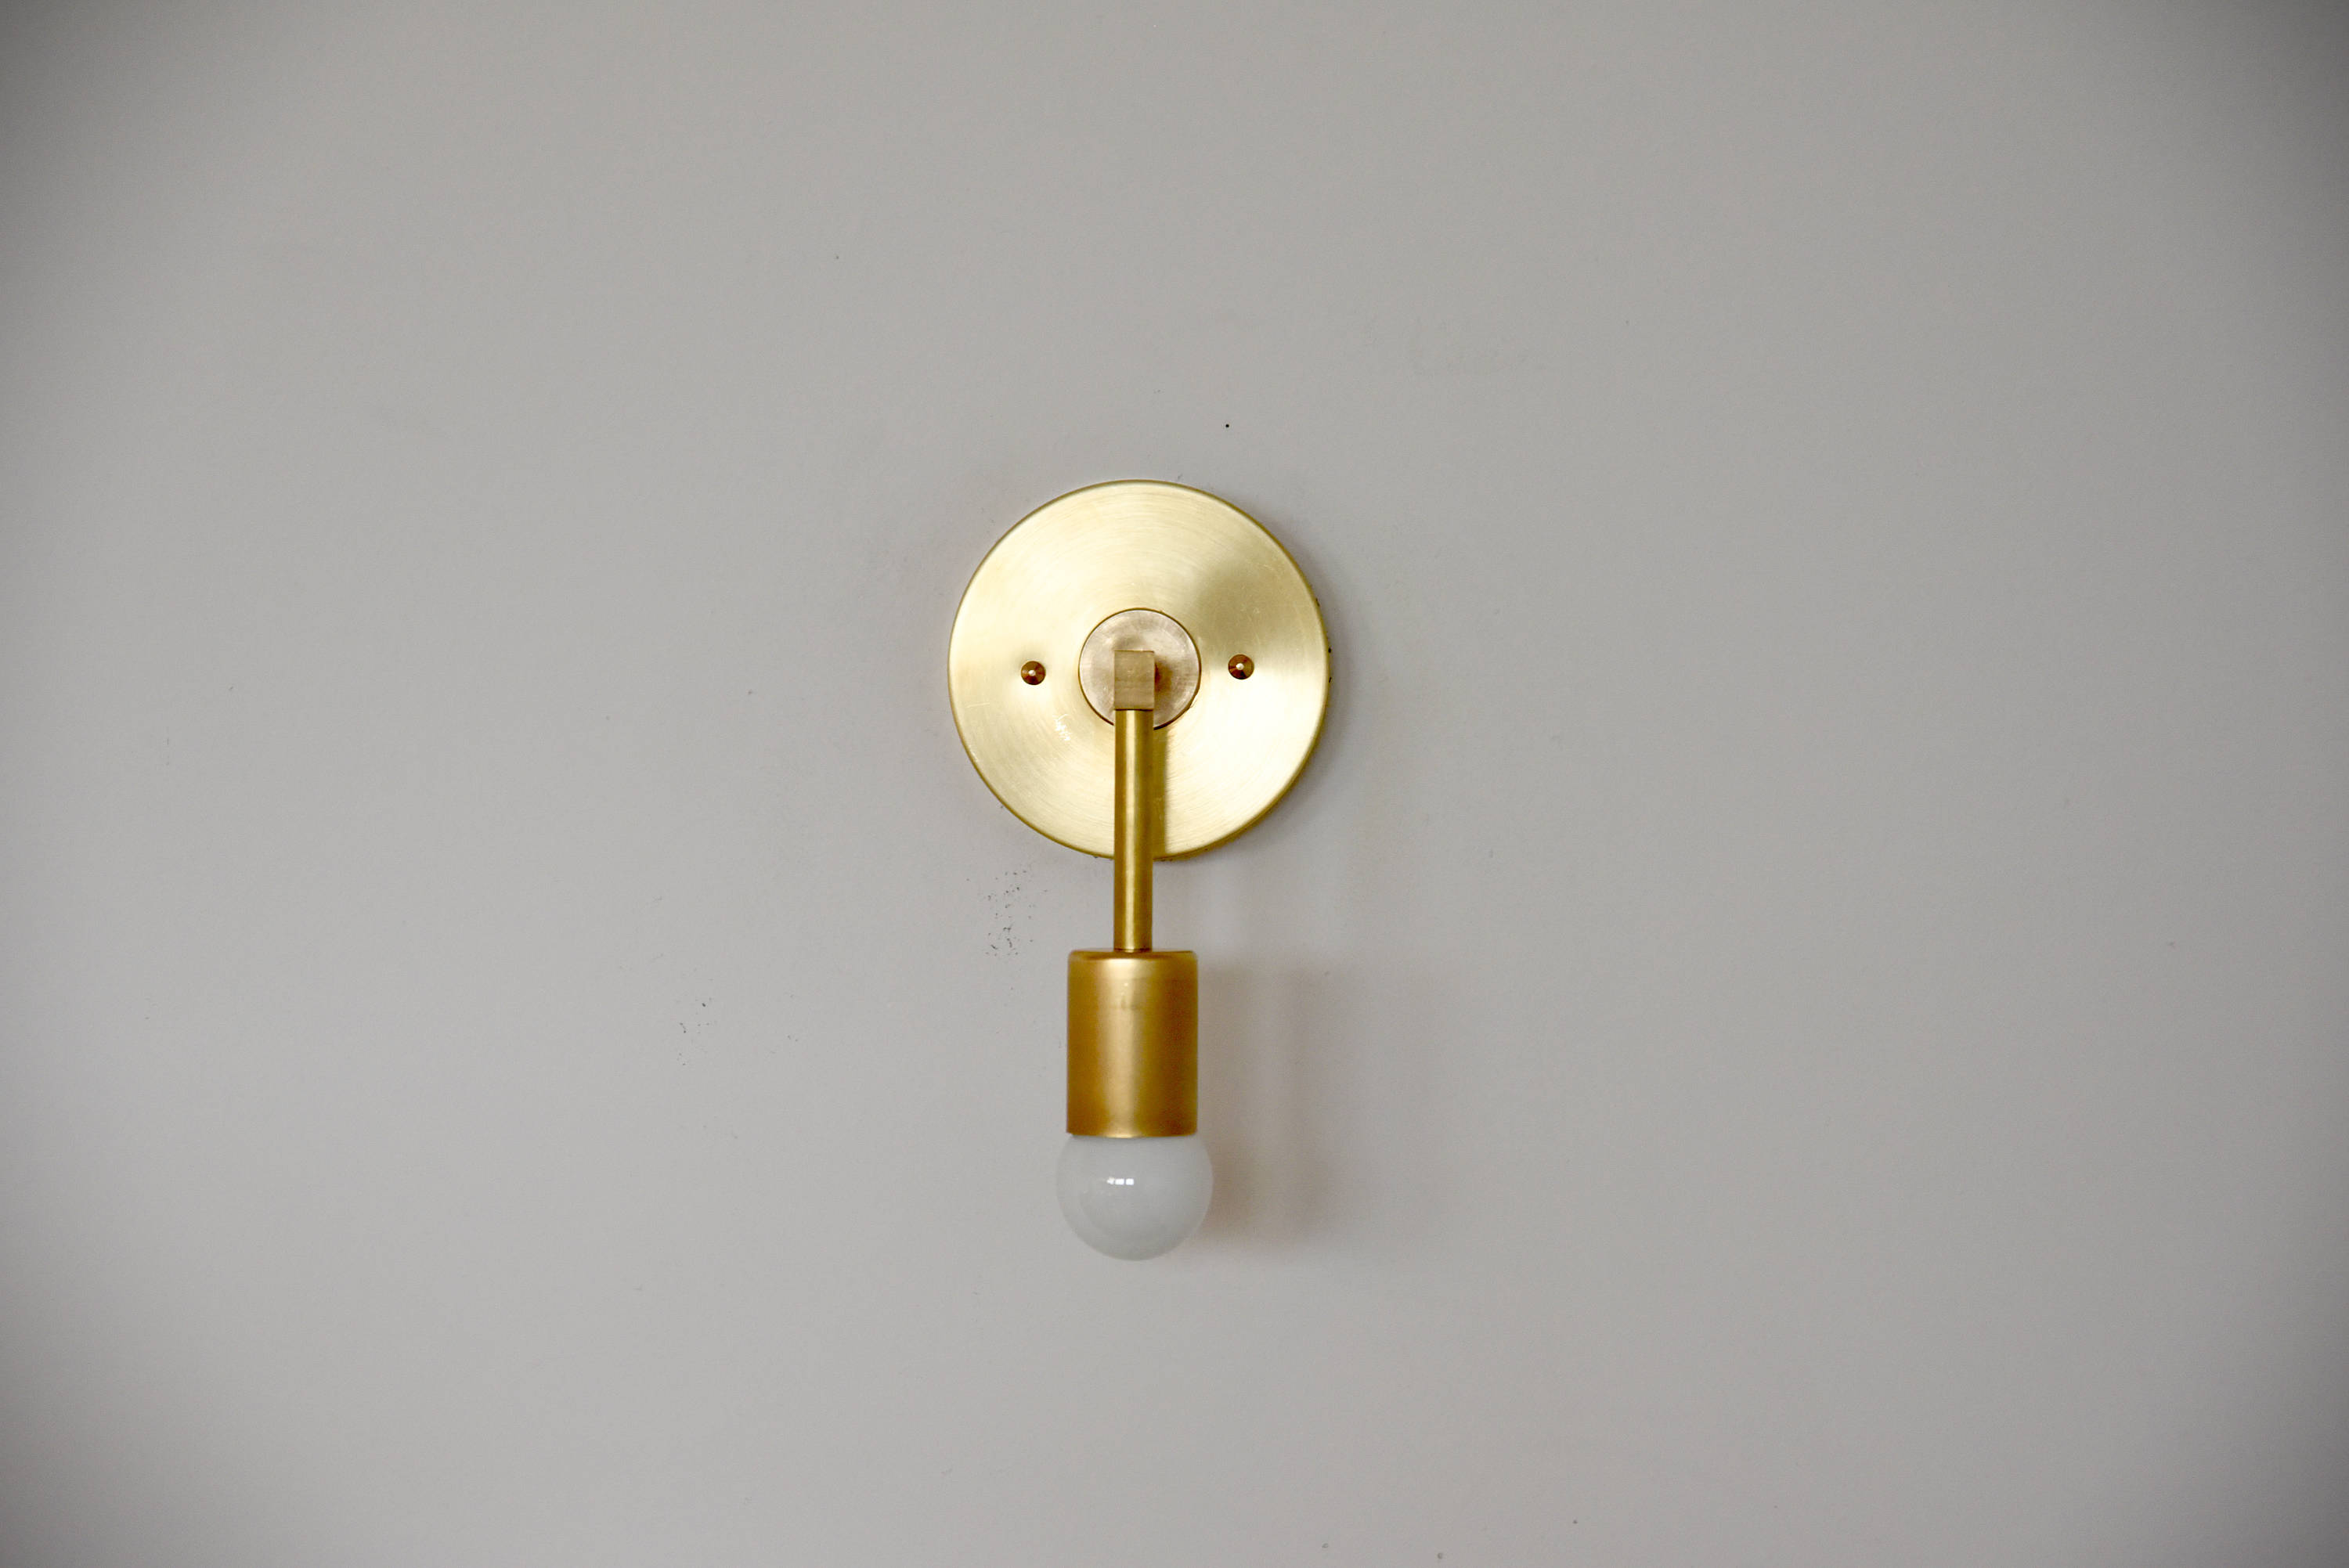 com canaan new bathroom inch ns lighting brass wall valley capitol sconce cfm item wide an hudson